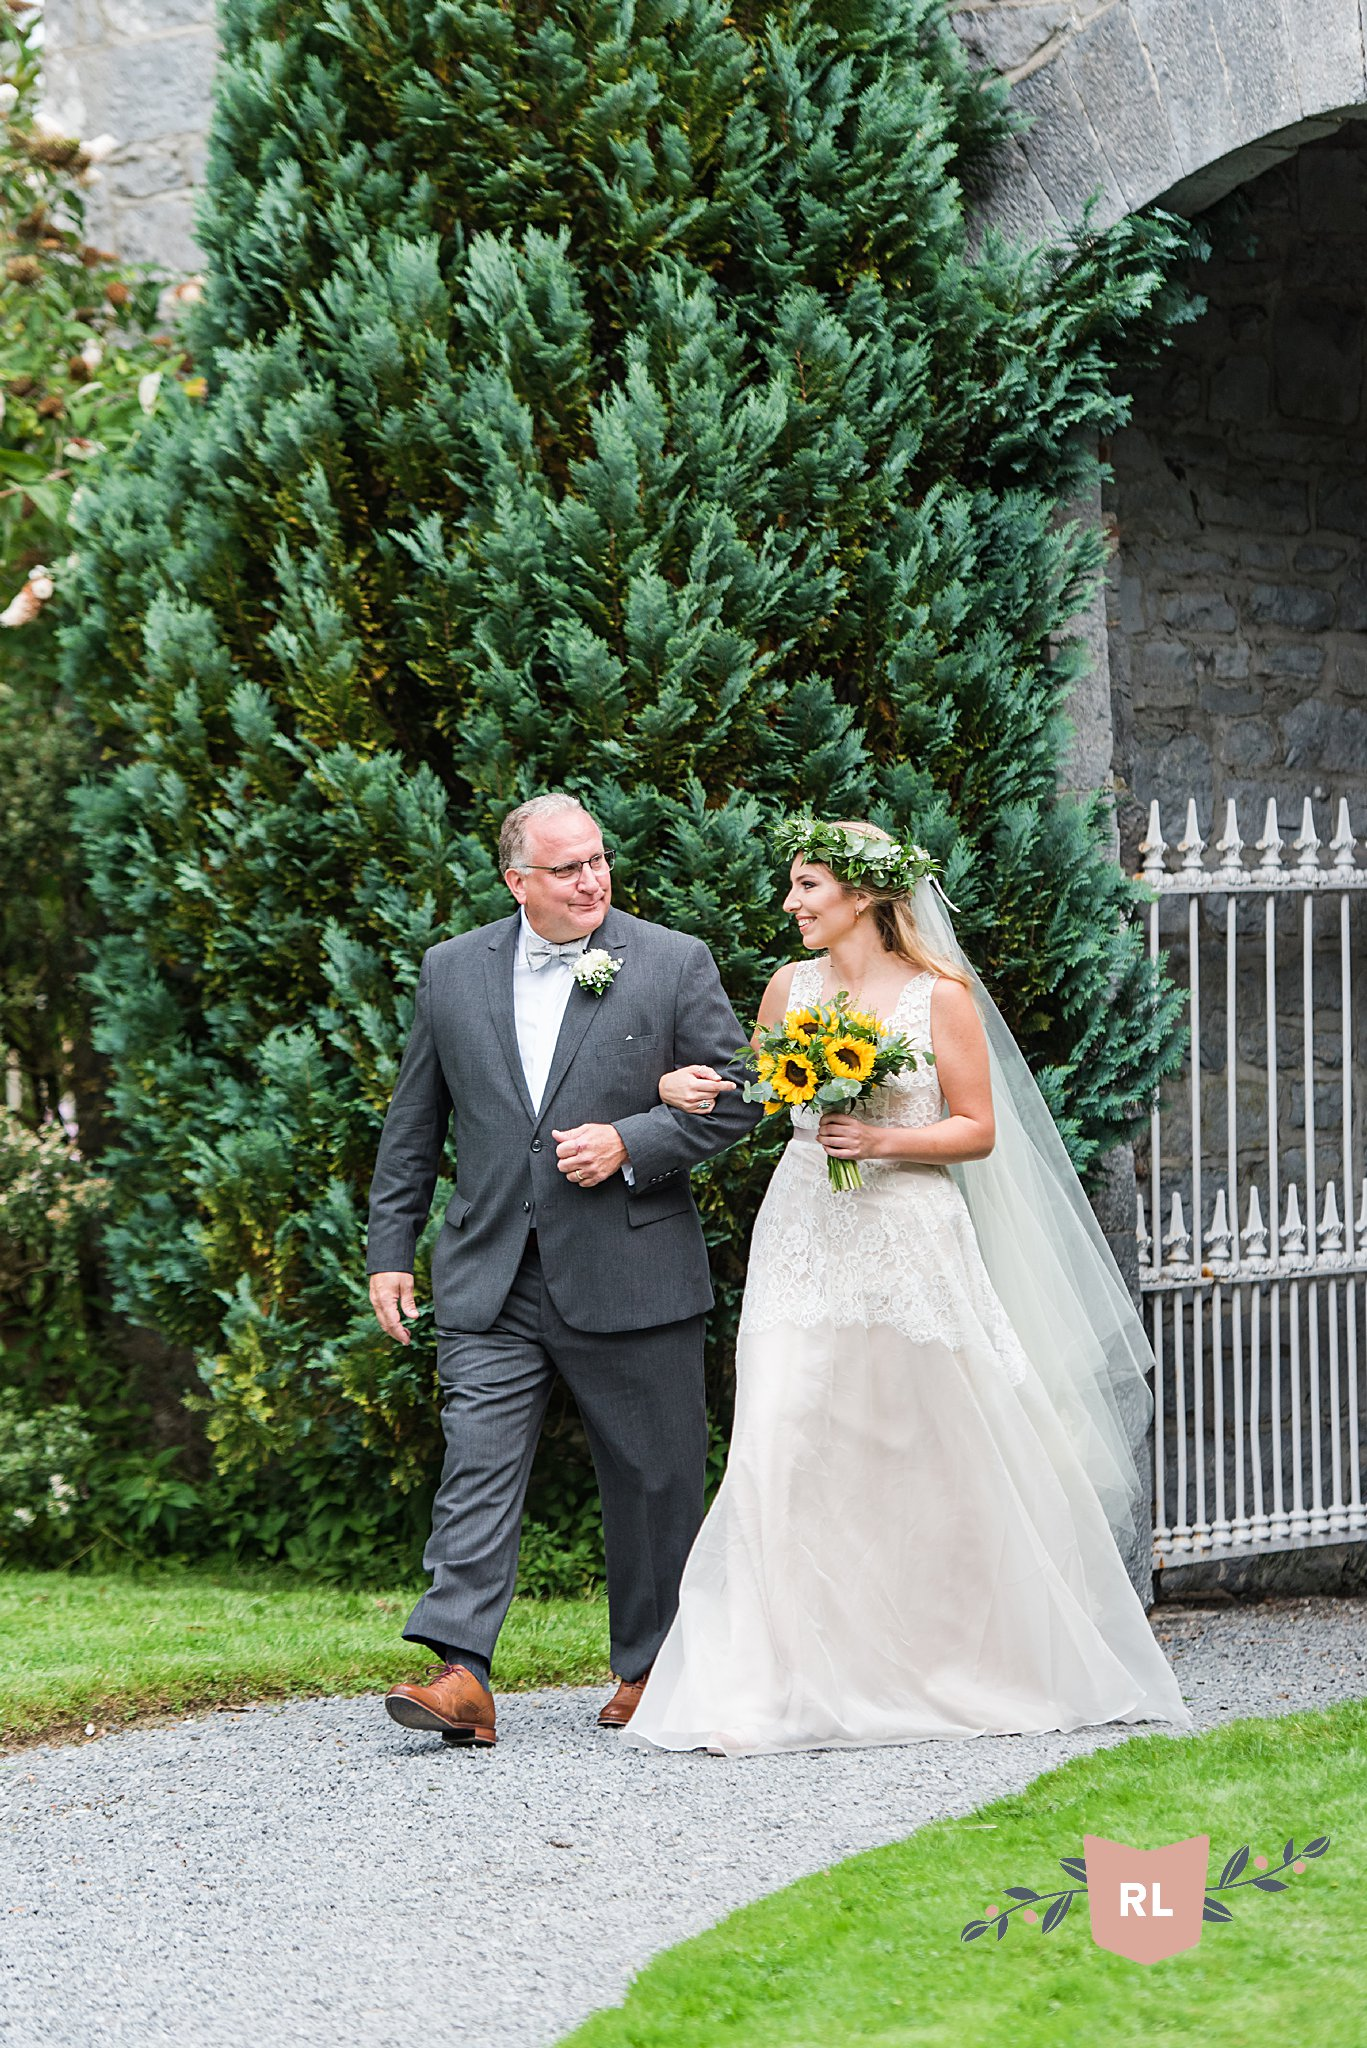 RossCastleWedding_Ireland_1018.jpg